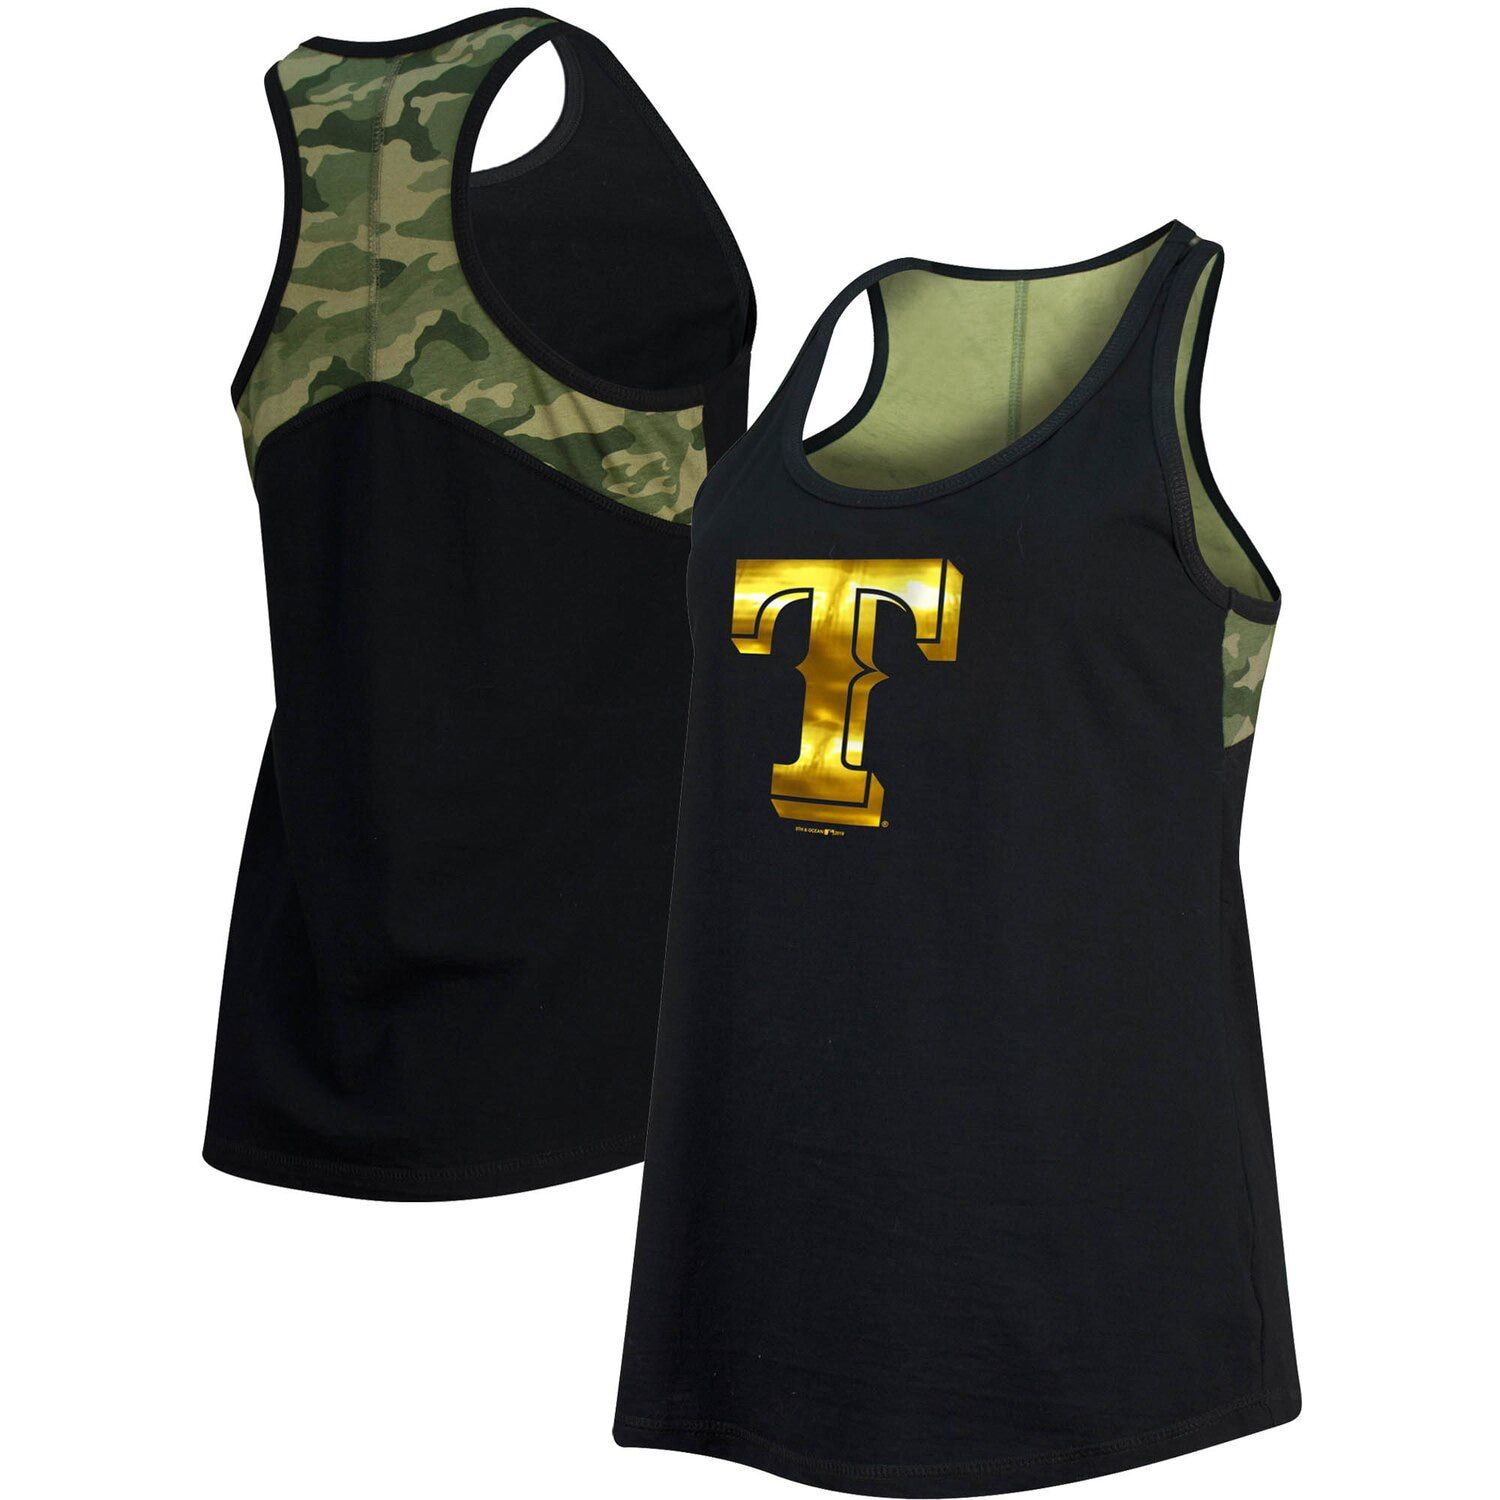 Women's New Era Black Texas Rangers Camo Racerback Tank Top #Affiliate #Black, #Texas, #Women, #Era